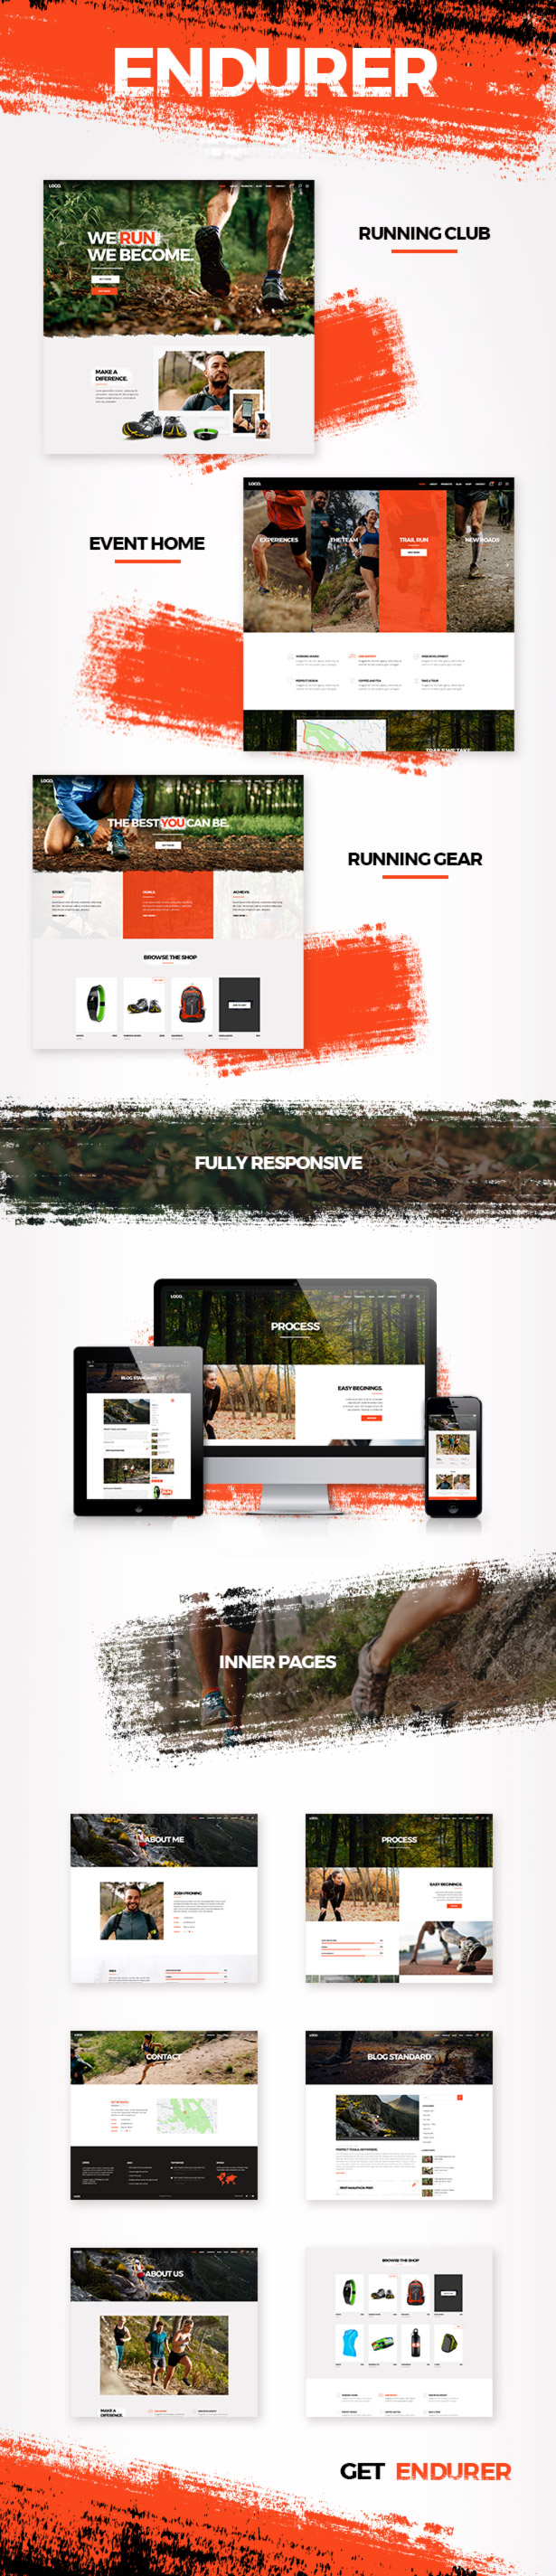 WordPress theme Endurer - A Running Club and Sports Theme (Health & Beauty)